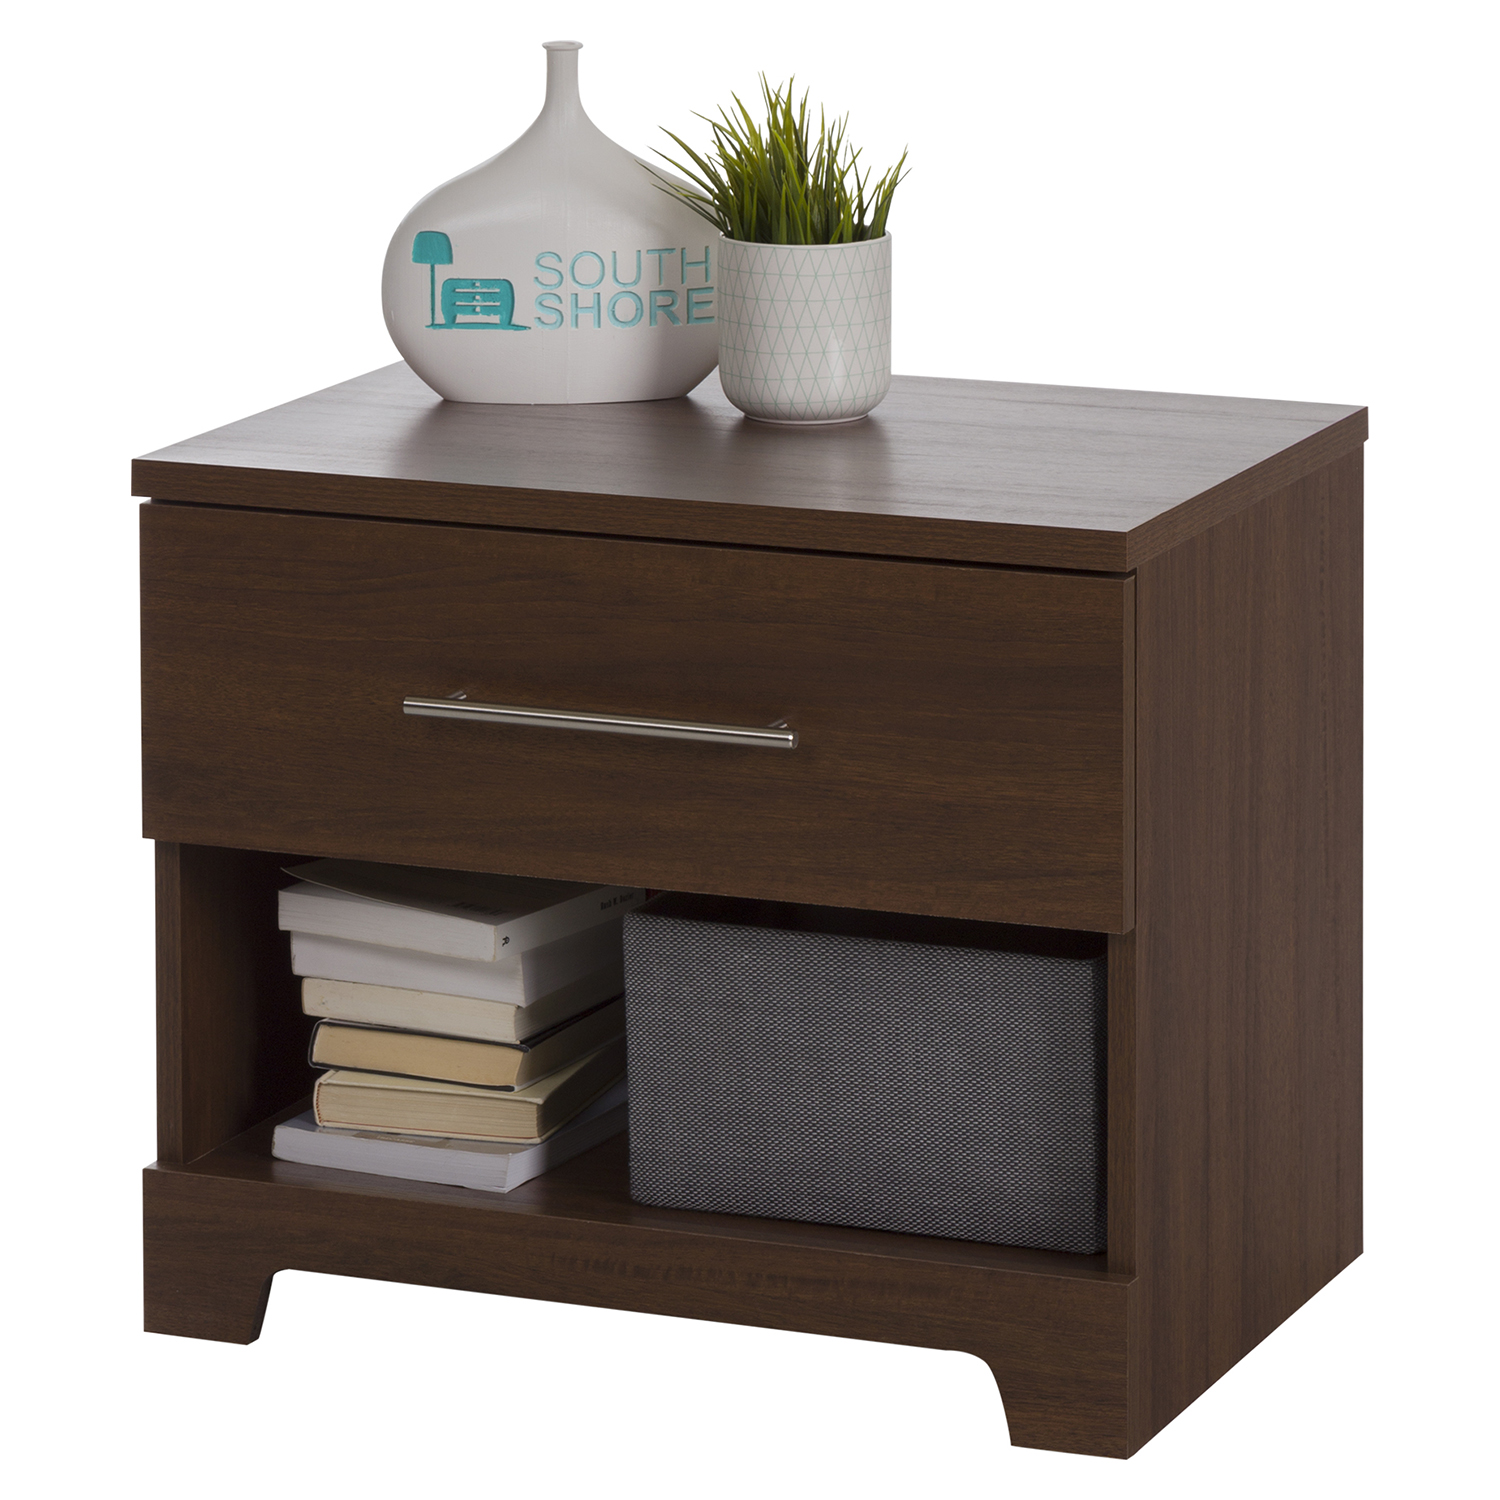 Primo 1 Drawer Nightstand, Brown Walnut - SS-10335